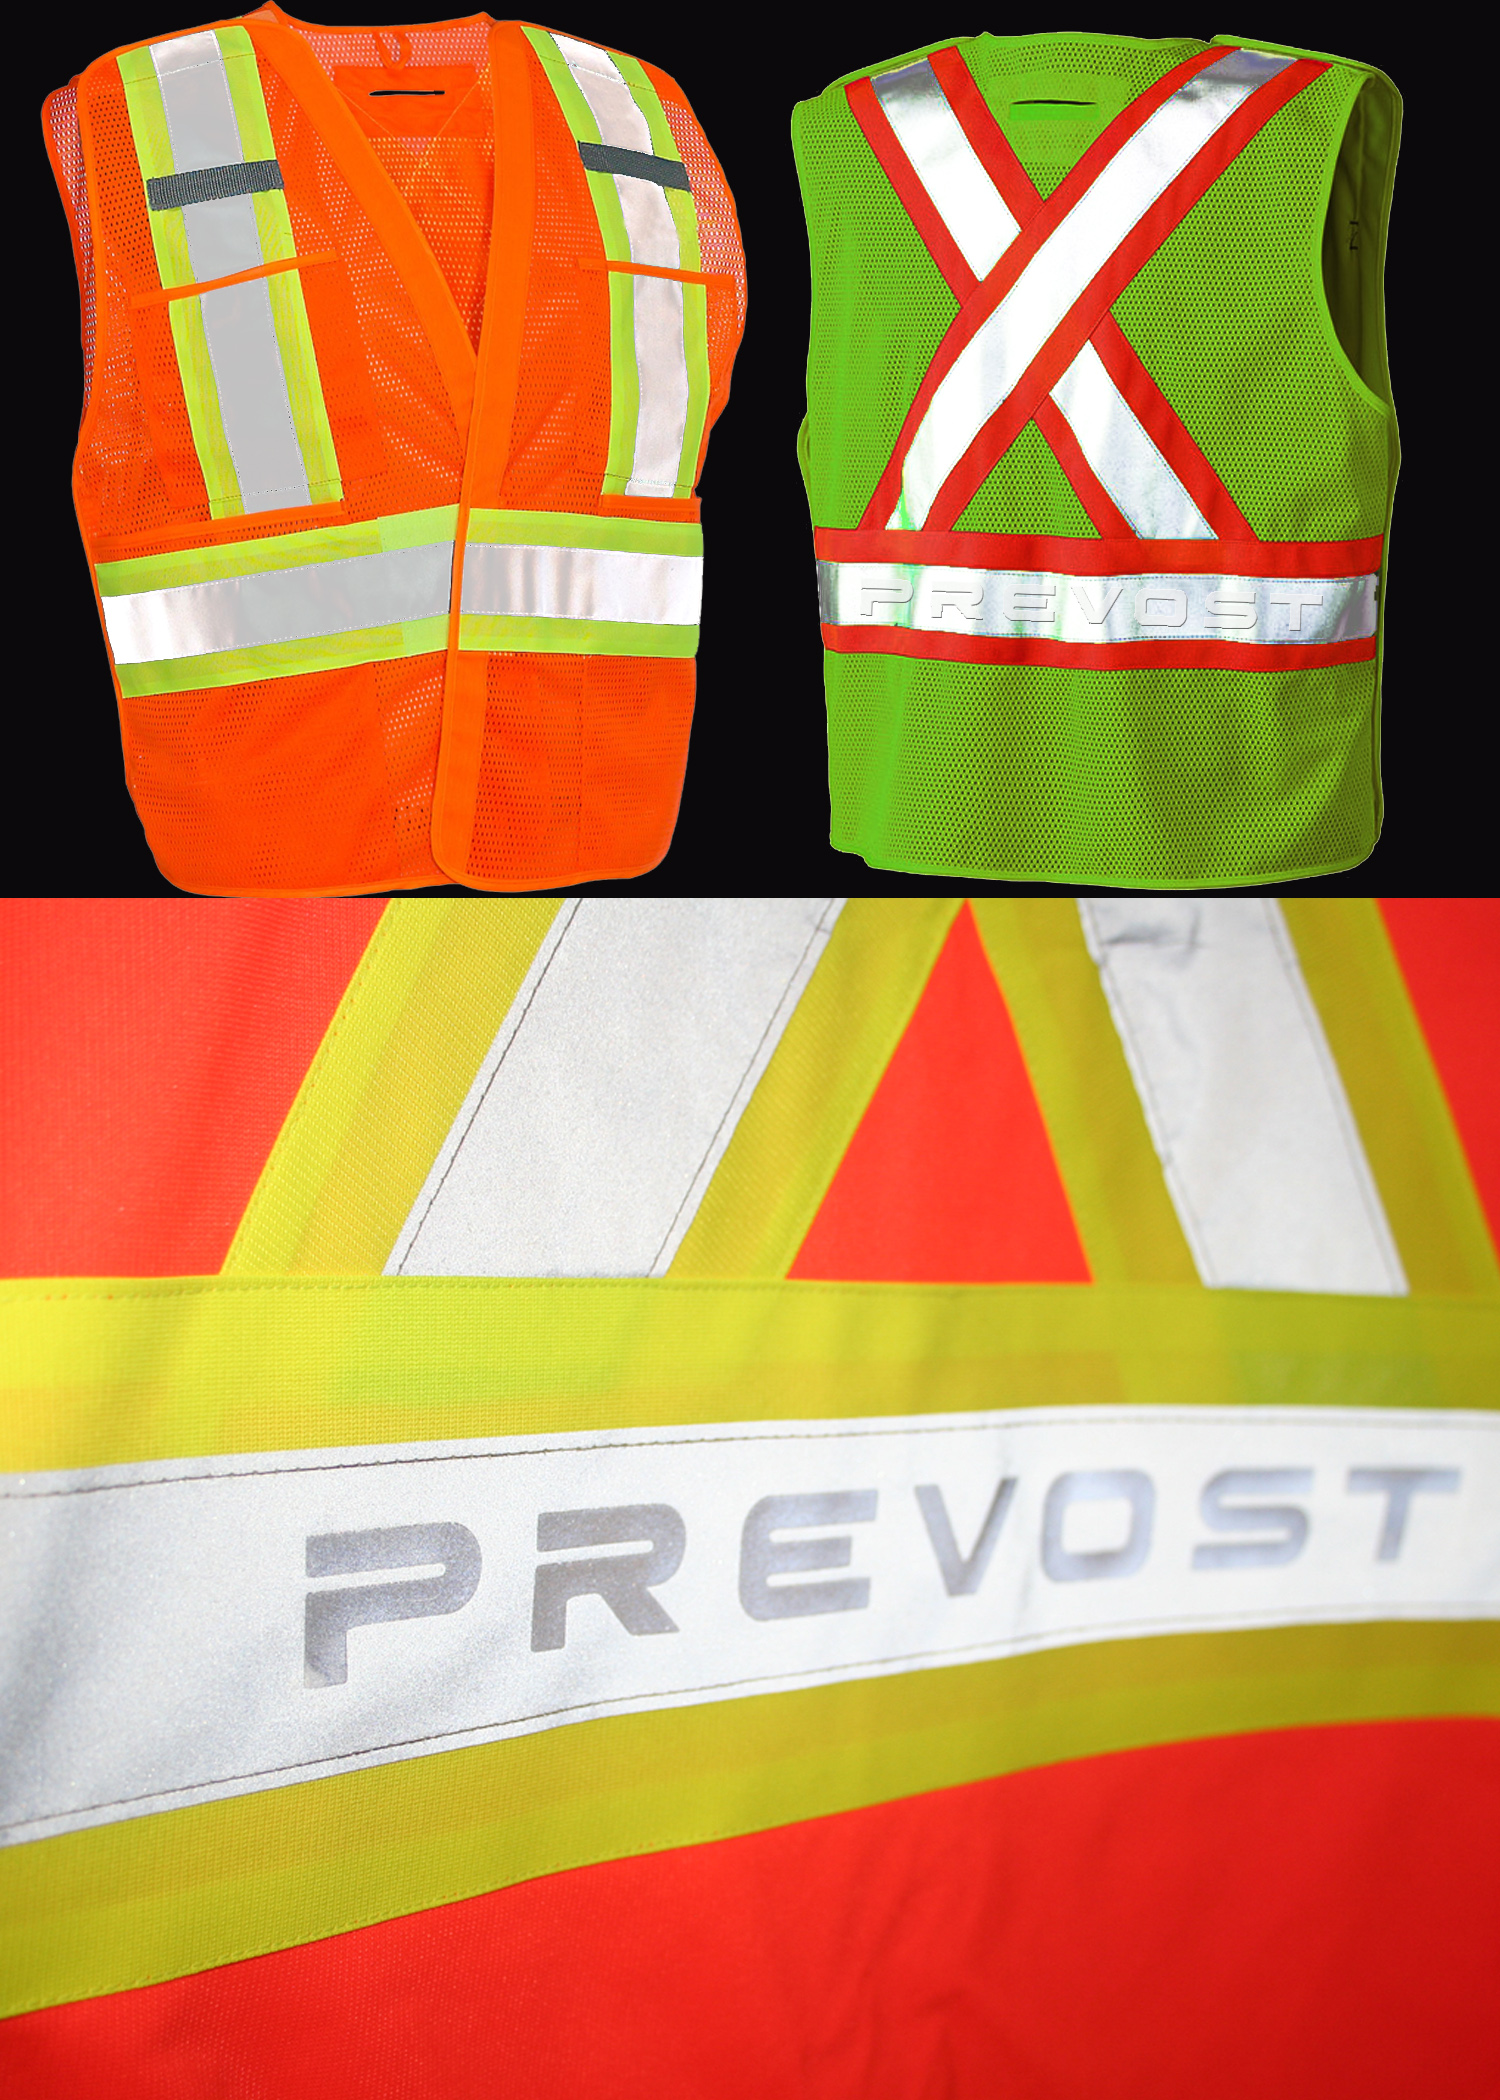 5 Point Tear-away Safety Vest